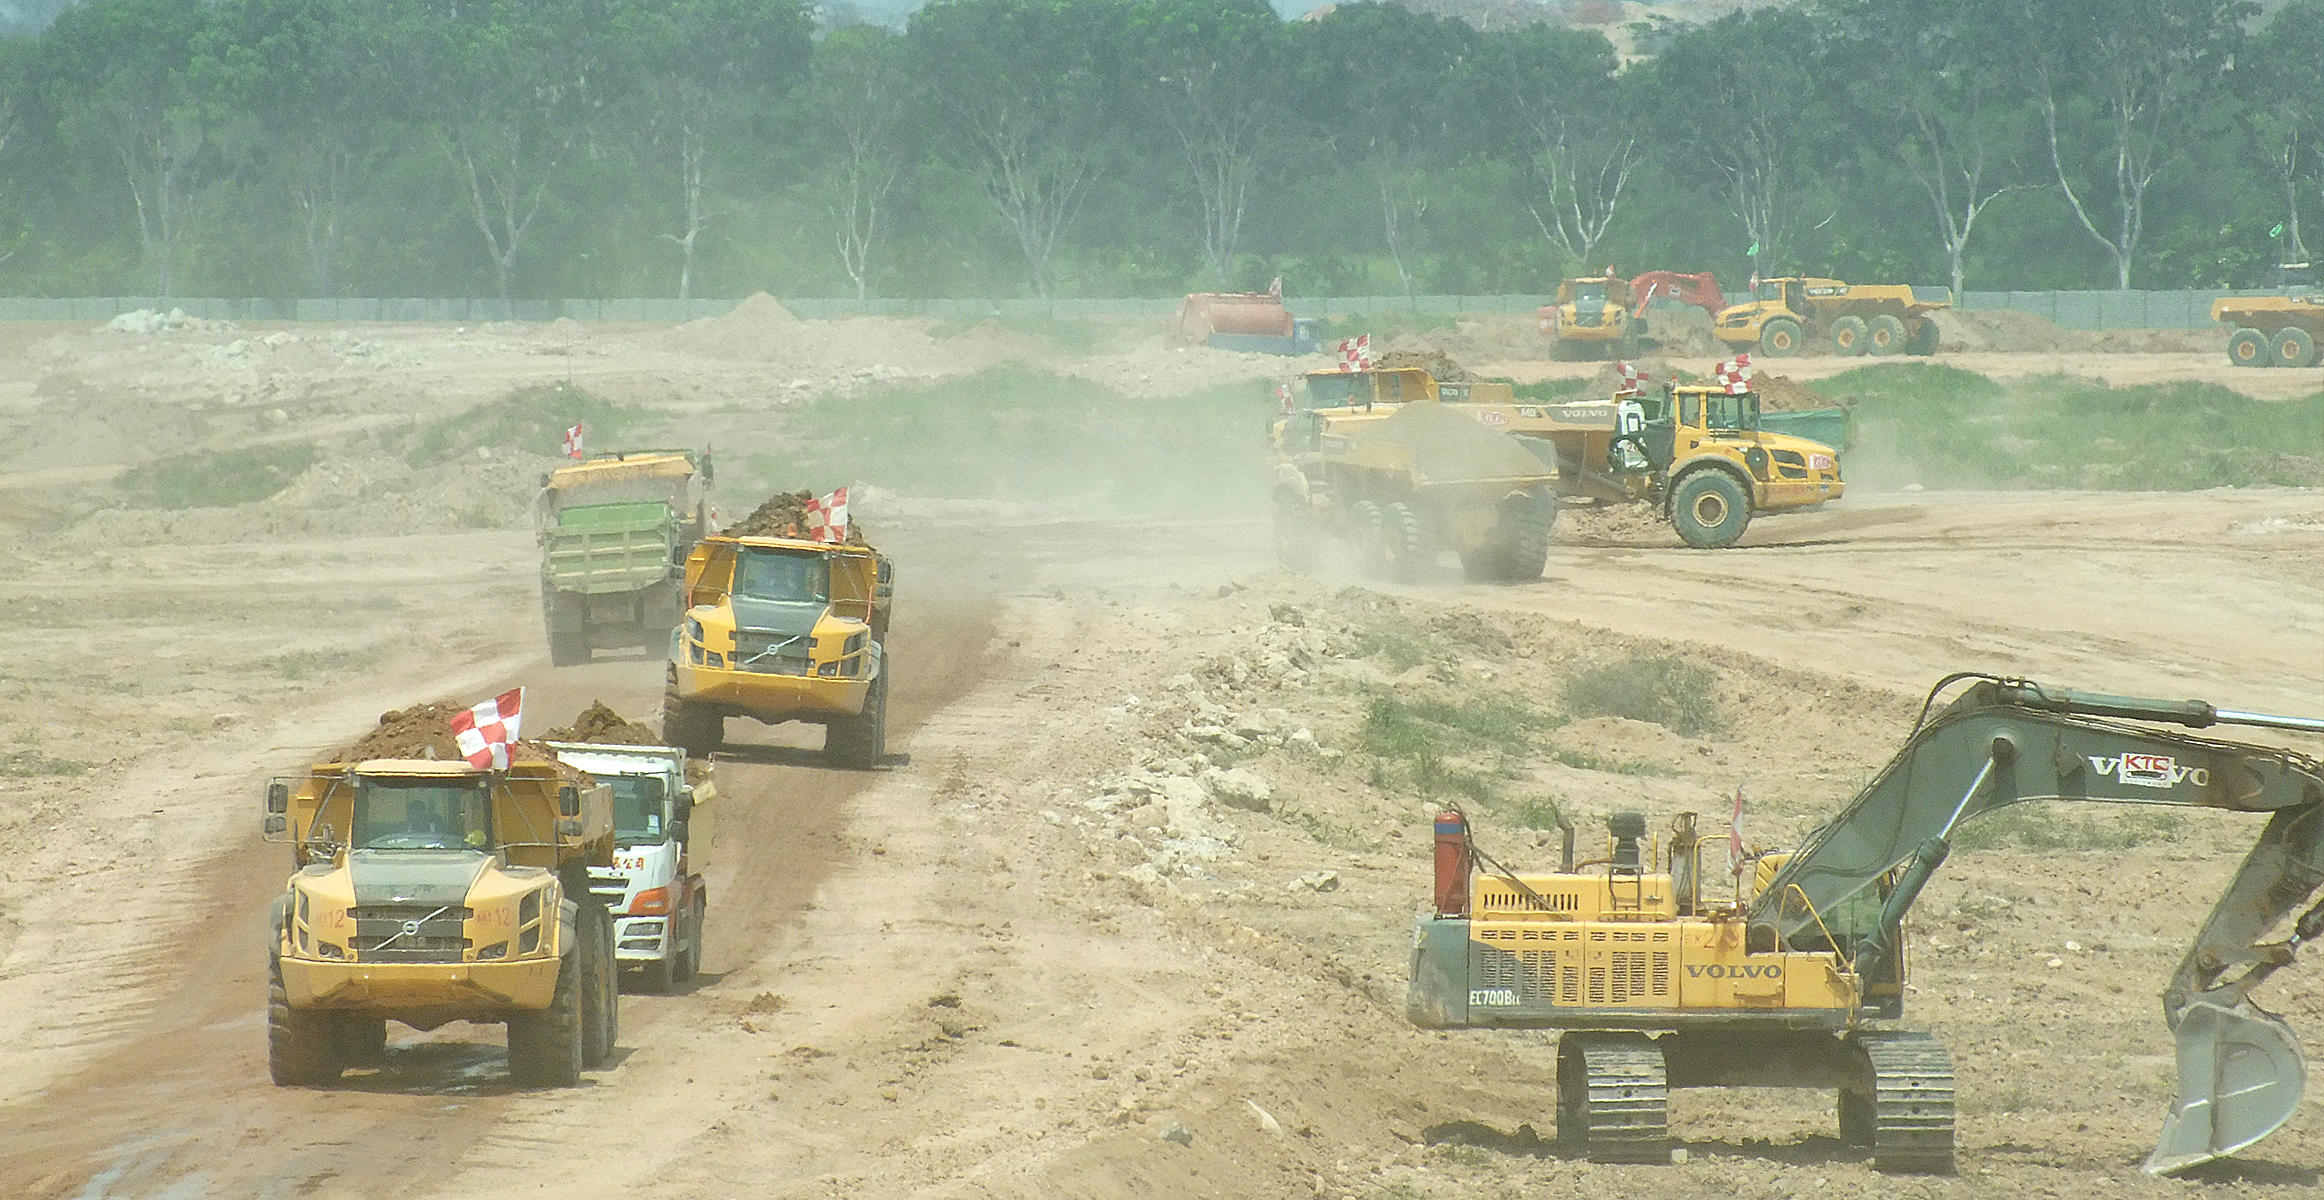 KTC relies on Volvo machines to move 15 million m3 of earth at Changi T5 site